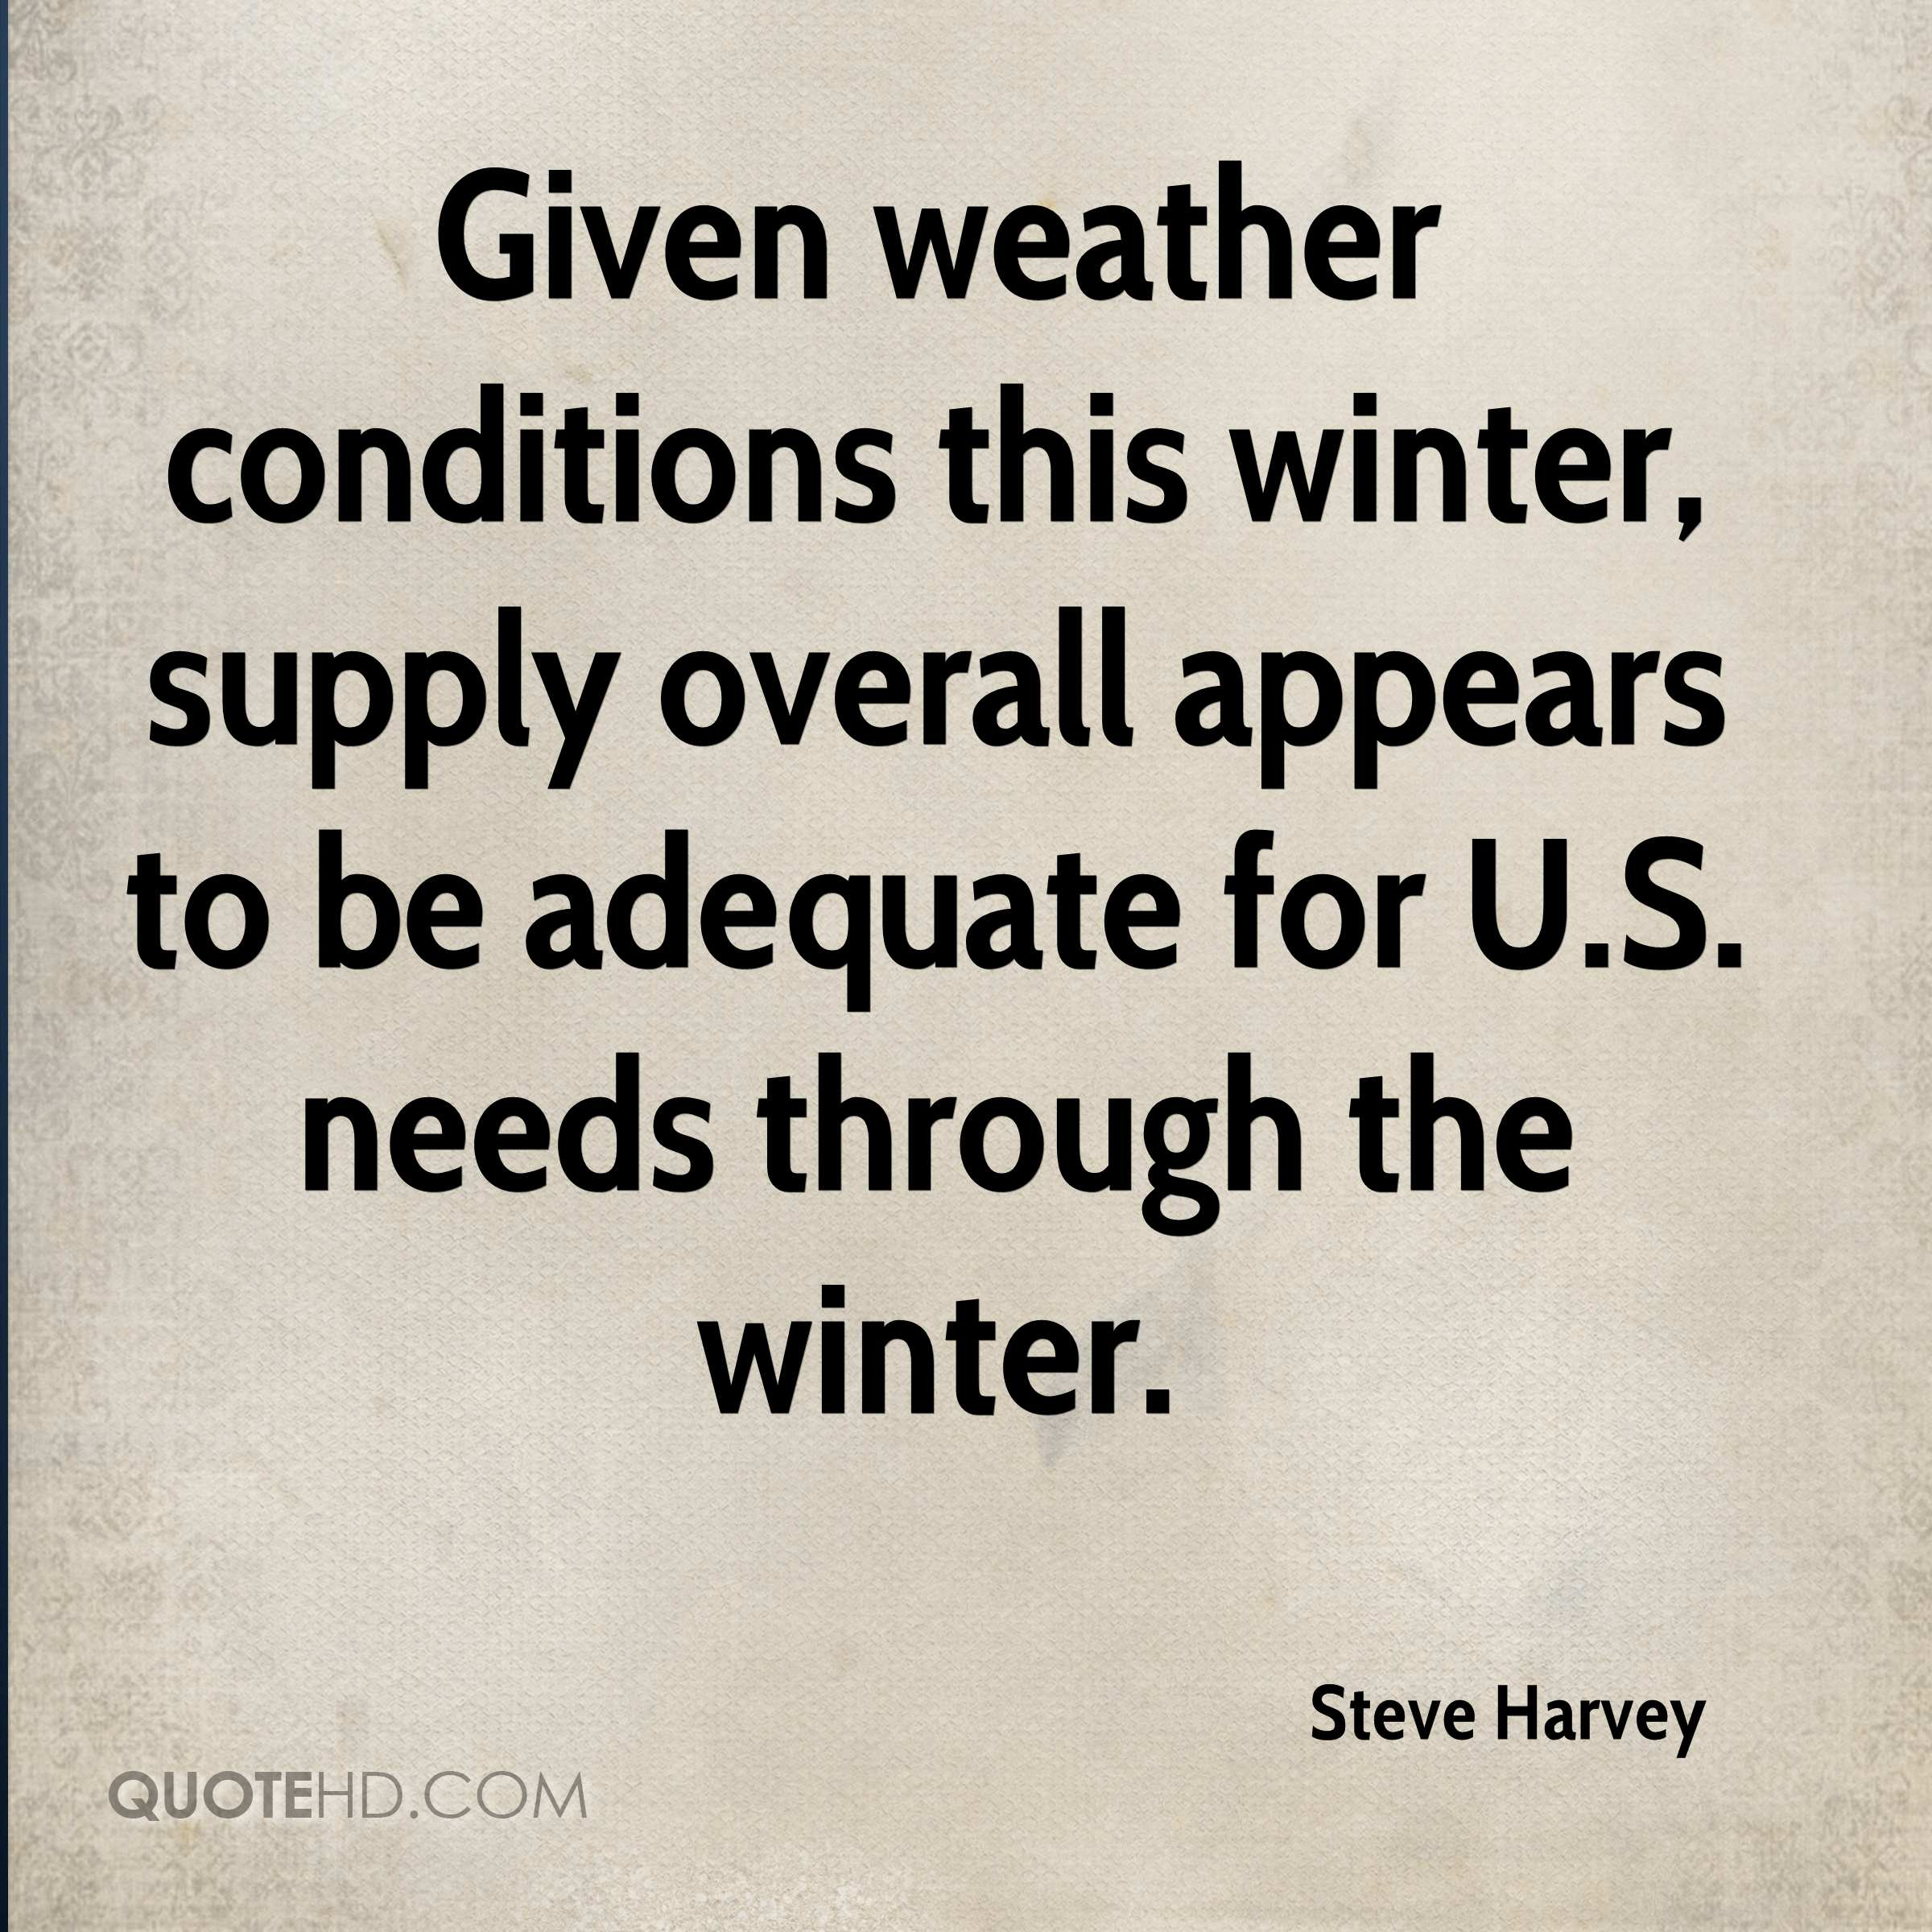 Given weather conditions this winter, supply overall appears to be adequate for U.S. needs through the winter.